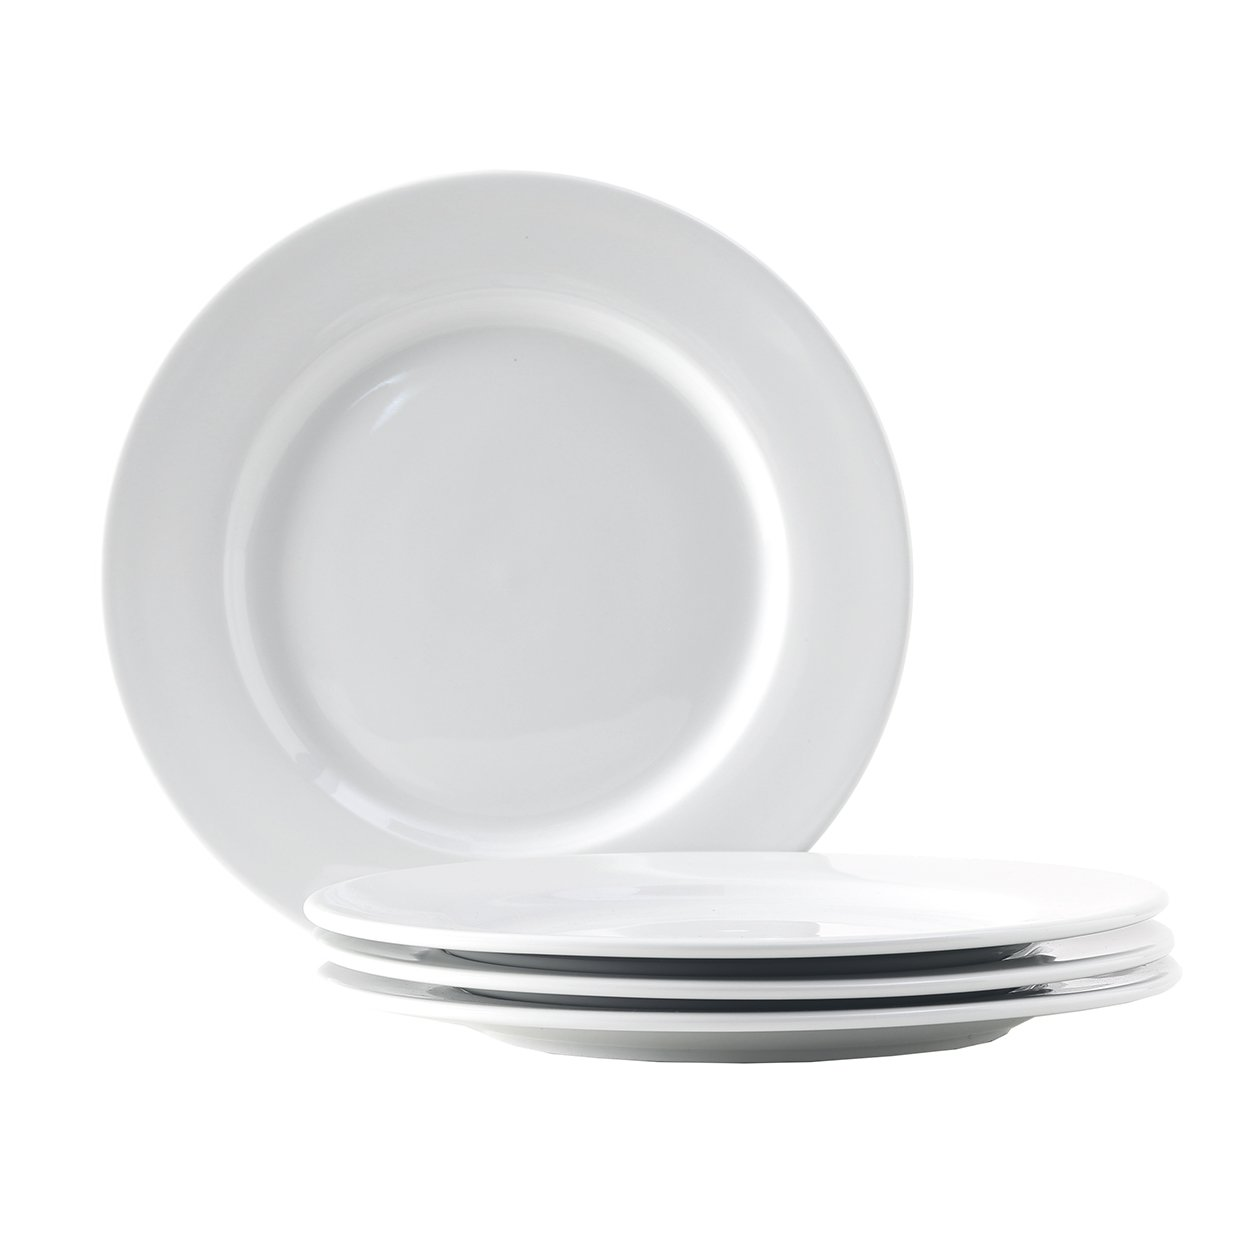 Tuxton Home Alaska Porcelain White 10-1/2'' Wide Rim Dinner Plate - Set of 4; Heavy Duty; Chip Resistant; Lead and Cadmium Free; Freezer to Oven Safe up to 500F